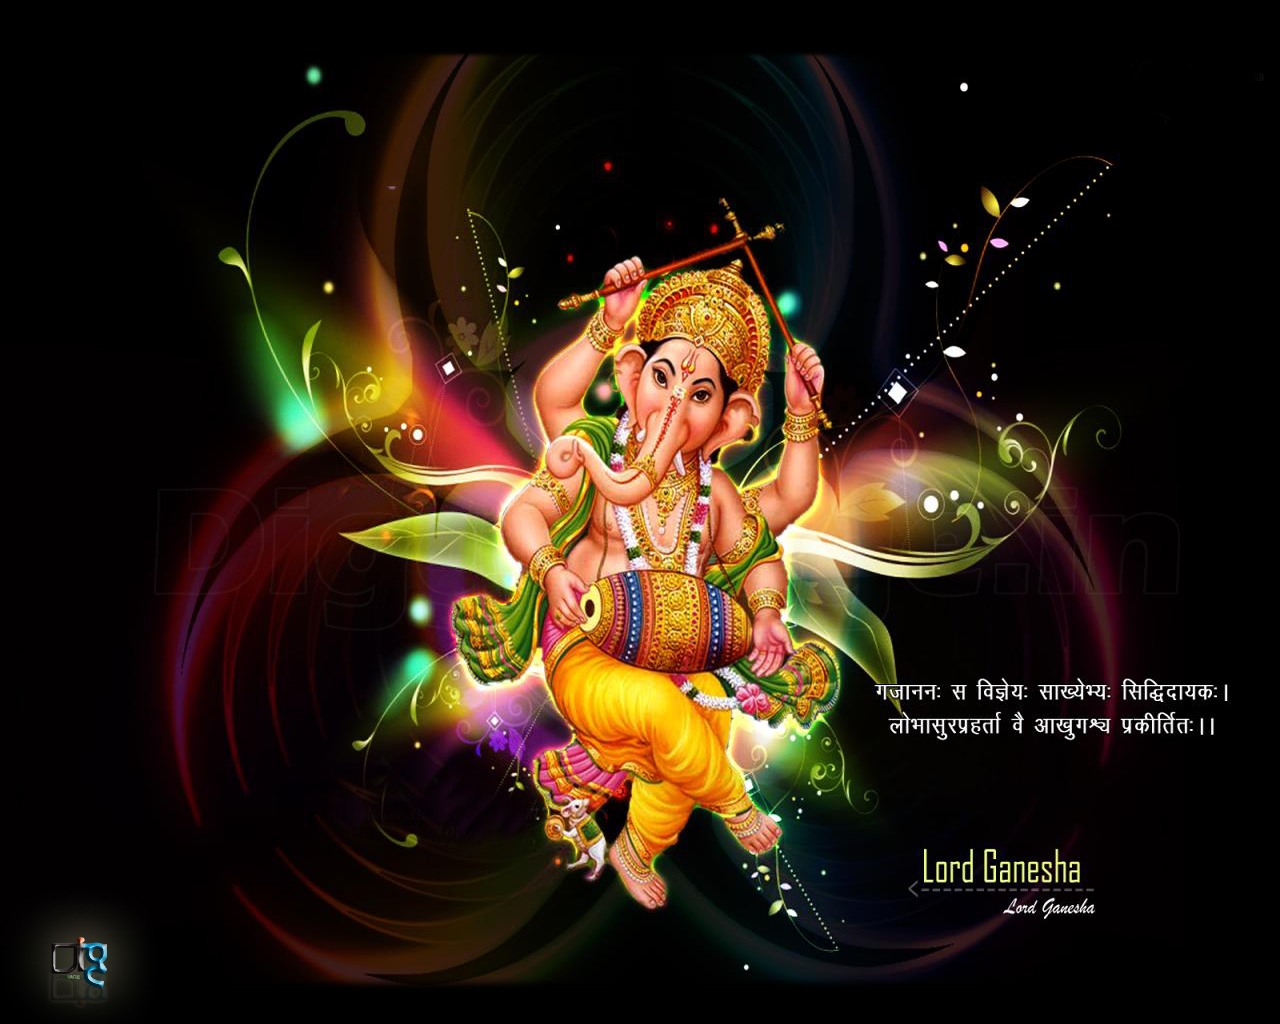 http://4.bp.blogspot.com/-4OElhWMWLMs/UFdUZnnfR-I/AAAAAAAACRQ/vSl9it7BRsM/s1600/Ganesh%20Festival%20Greetings%20in%20Hindi%20free%20download%20for%20pC%20wallpaper.JPG